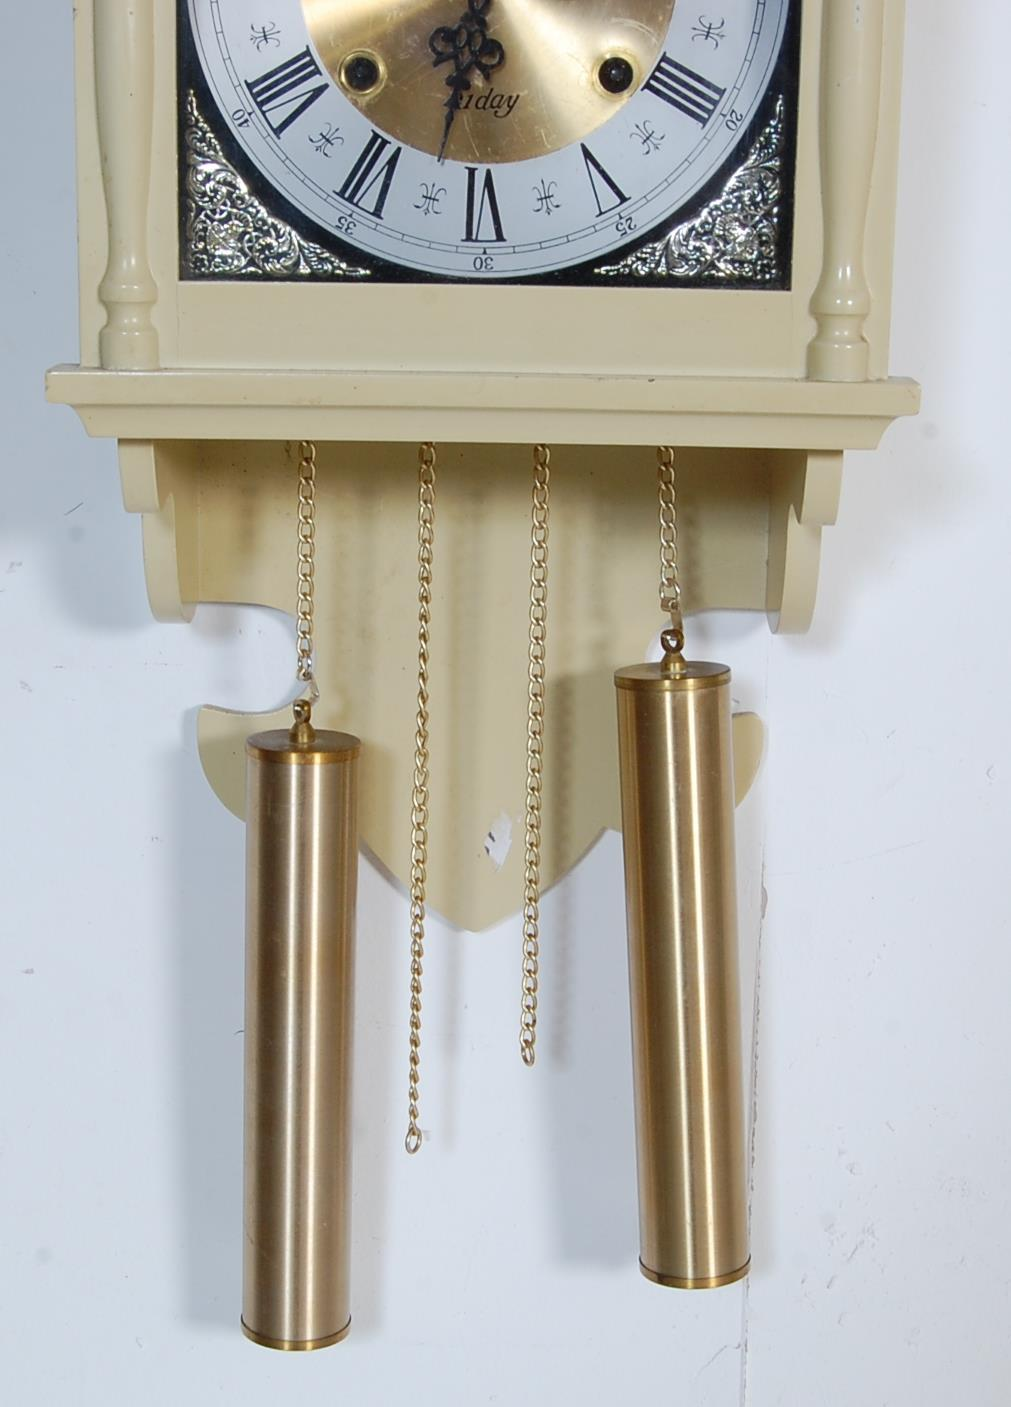 COLLECTION OF FOUR VINTAGE 20TH CENTURY WALL HANGING CLOCKS - Image 4 of 8